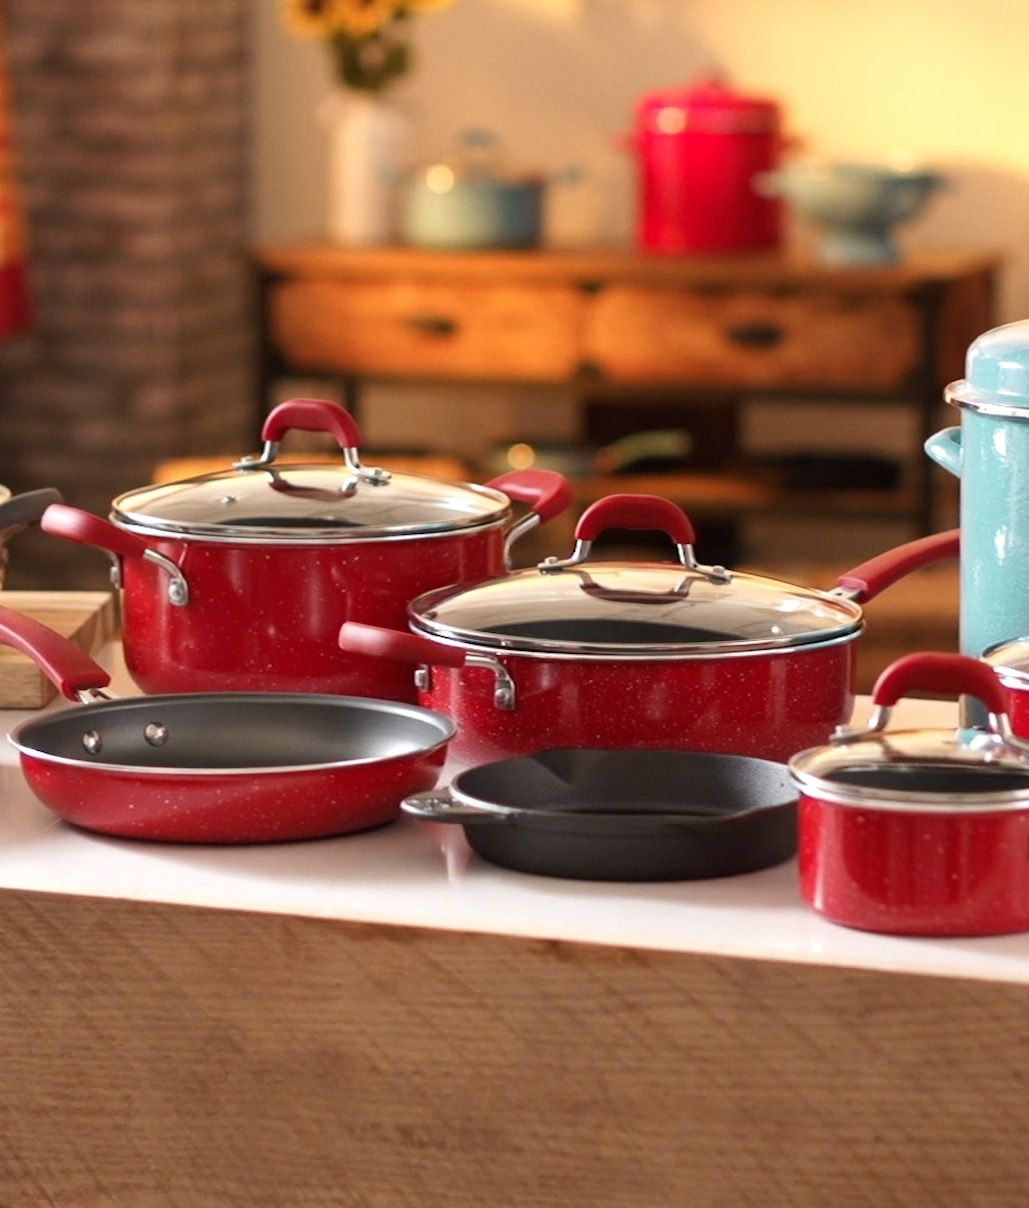 Kitchen Fun: Now You're Cooking! Bring Some Color To Your Kitchen With